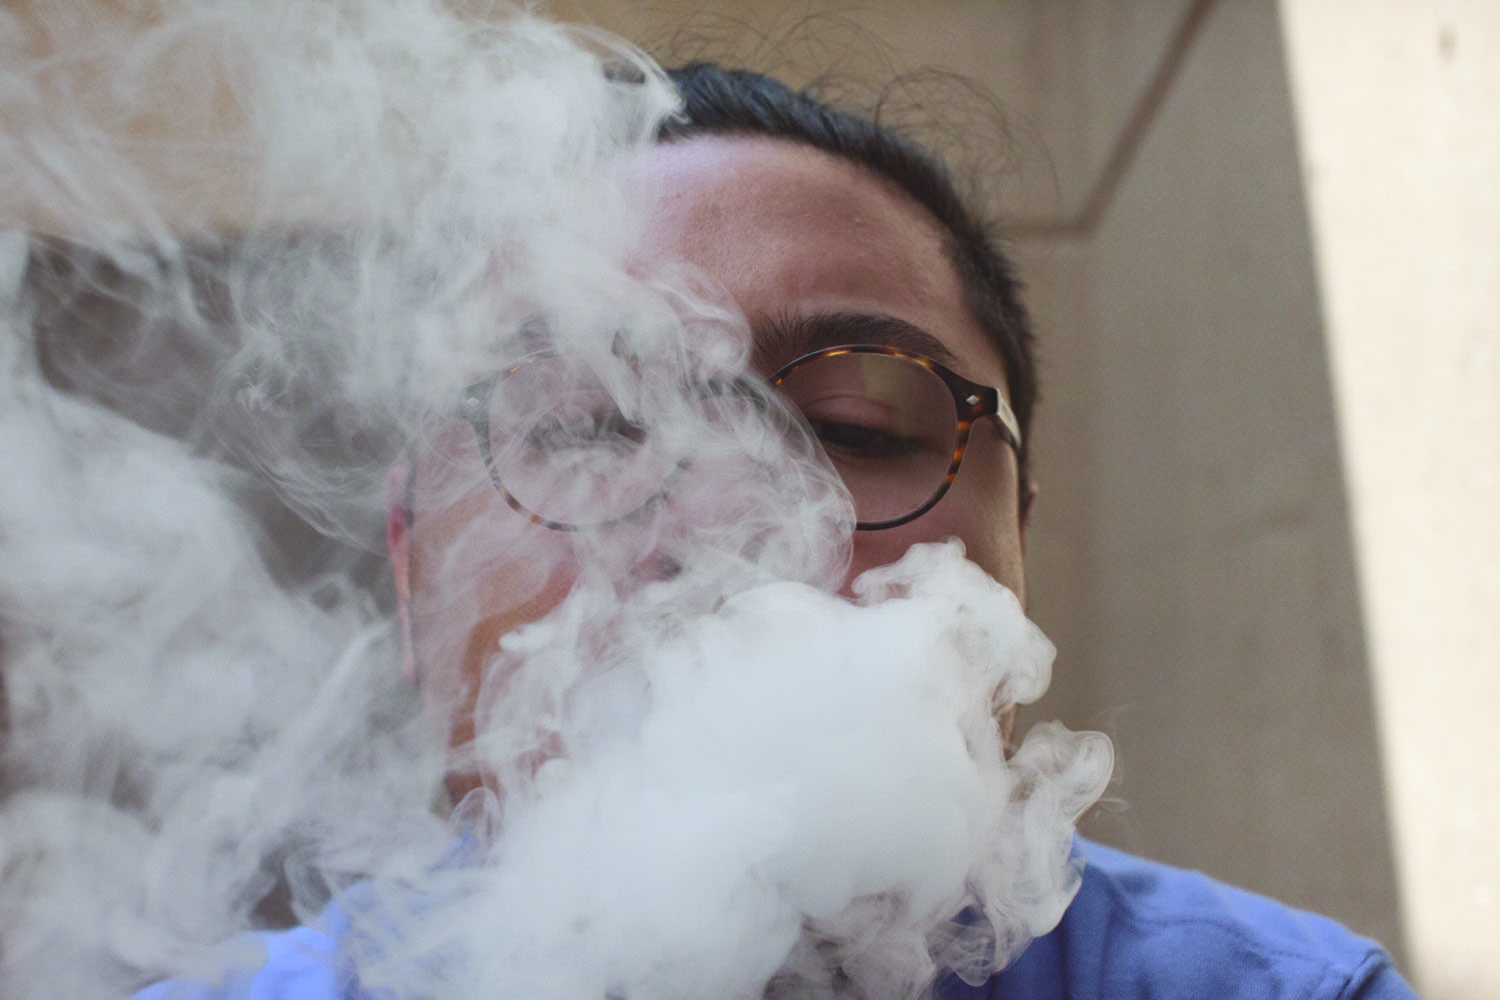 E-cig confiscation rumors unfounded